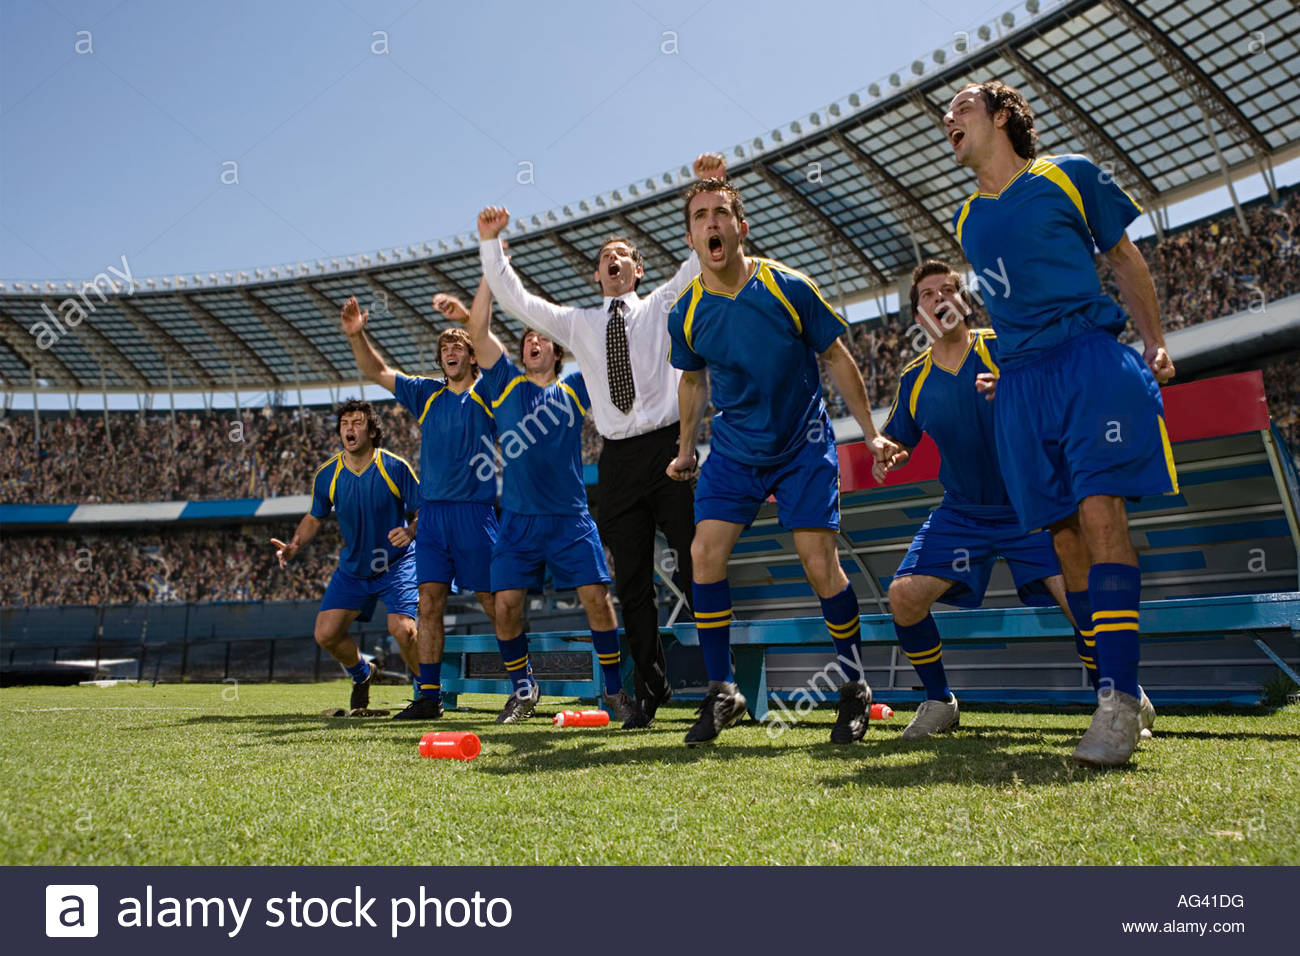 Football manager and footballers celebrating - Stock Image